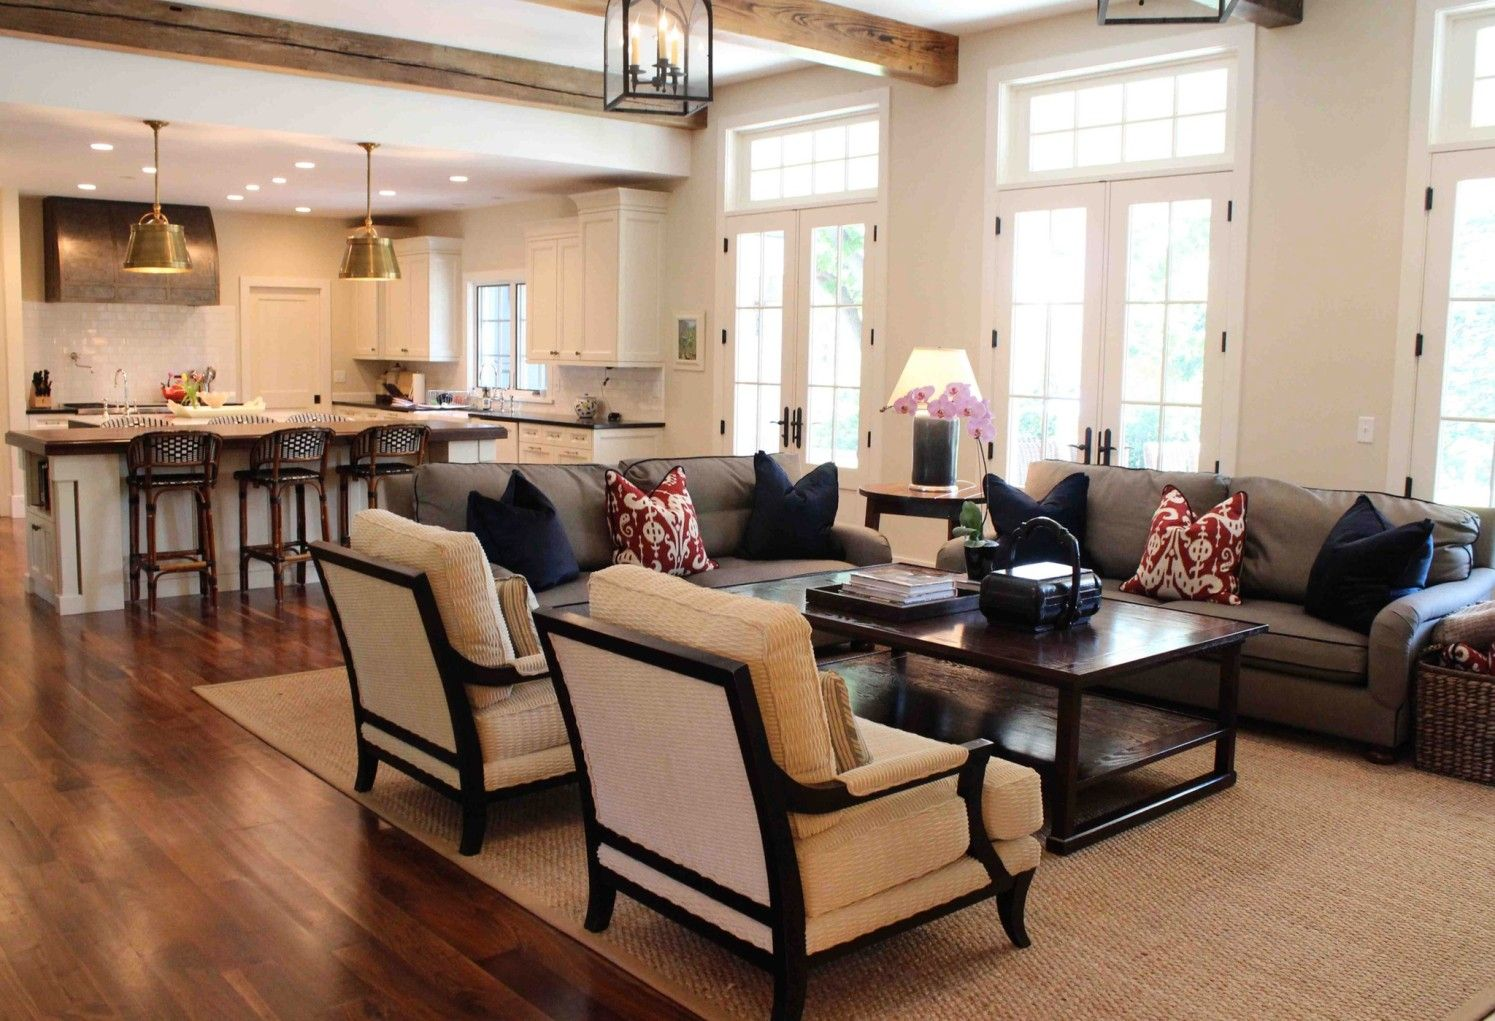 brilliant ideas to redecorate your living rooms long on family picture wall ideas for living room furniture arrangements id=26912